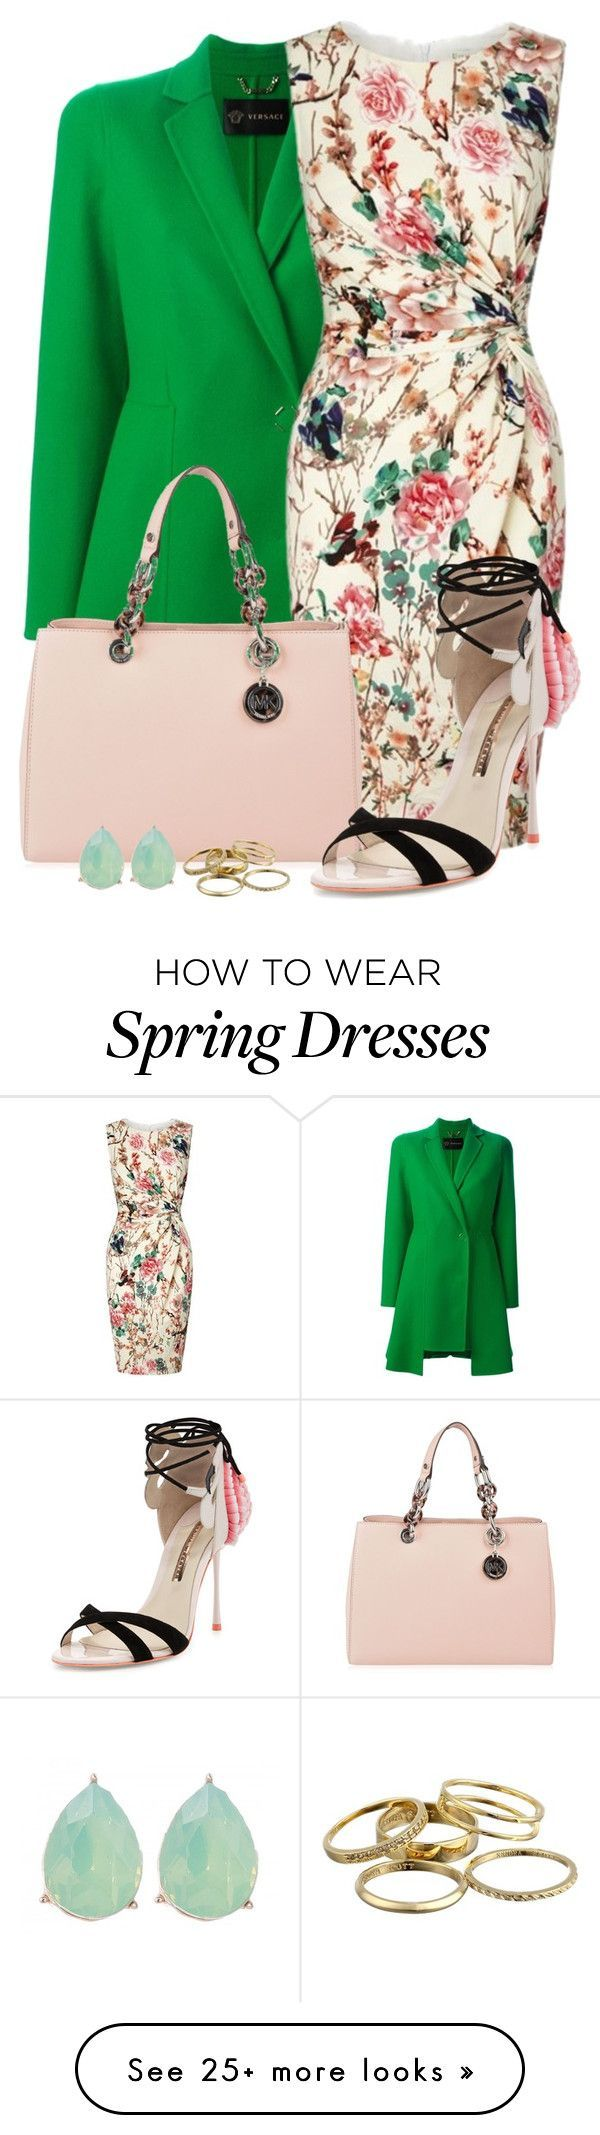 """#451"" by joana-raquel-26 on Polyvore featuring Versace, Lipsy, MICHAEL Michael Kors, Sophia Webster, Kendra Scott, women's clothing, women, female, woman and misses"